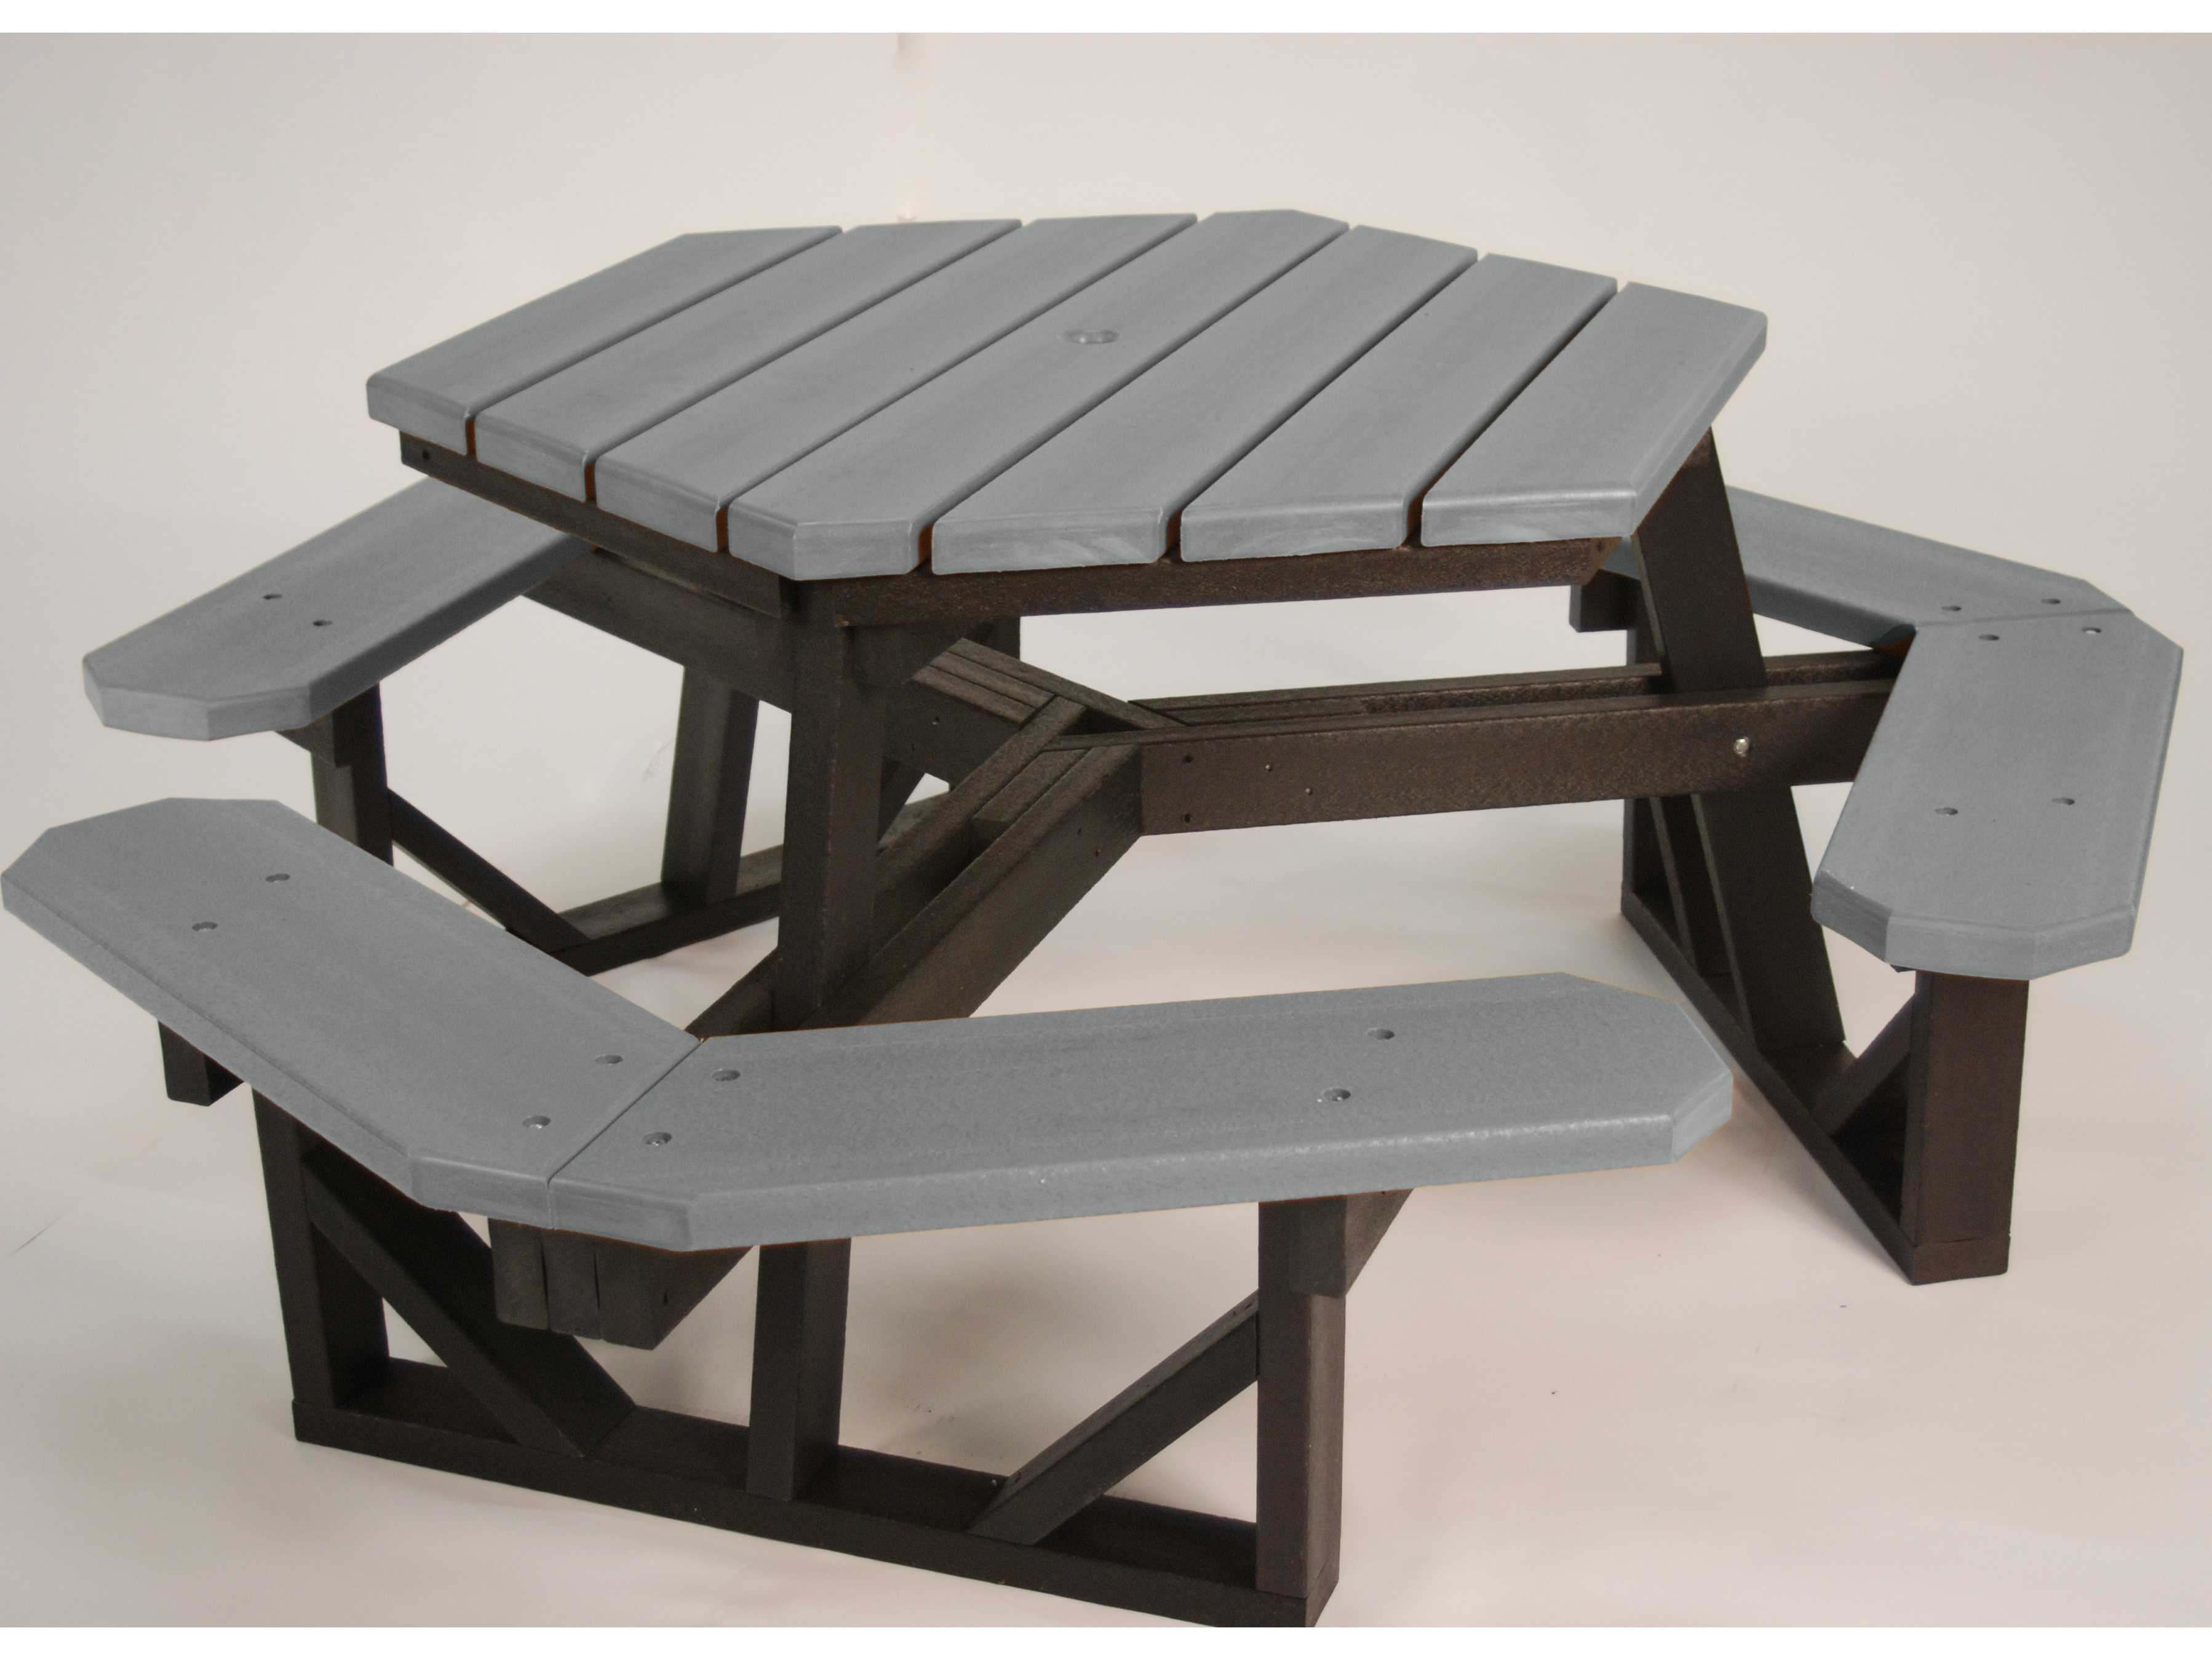 Frog Furnishings Hex Recycled Plastic 6 ft  69 5 x 69 5 Hexagon Picnic Table